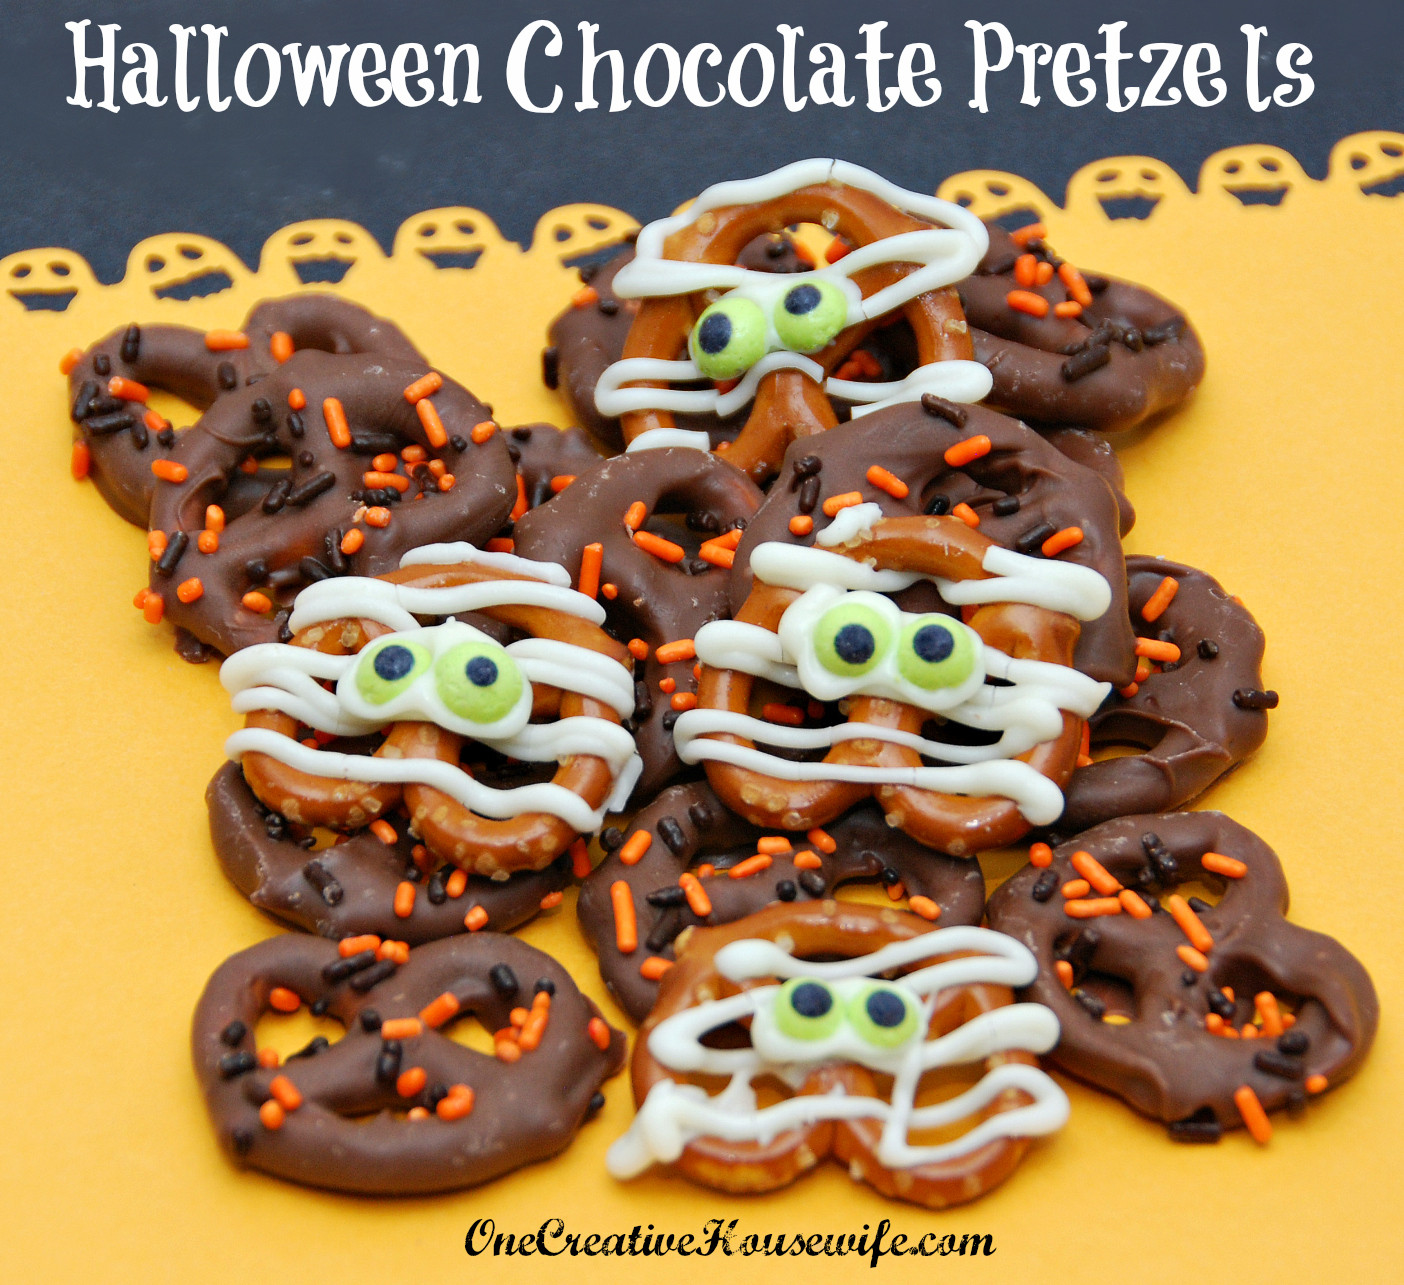 Halloween Chocolate Covered Pretzels  e Creative Housewife Halloween Chocolate Covered Pretzels